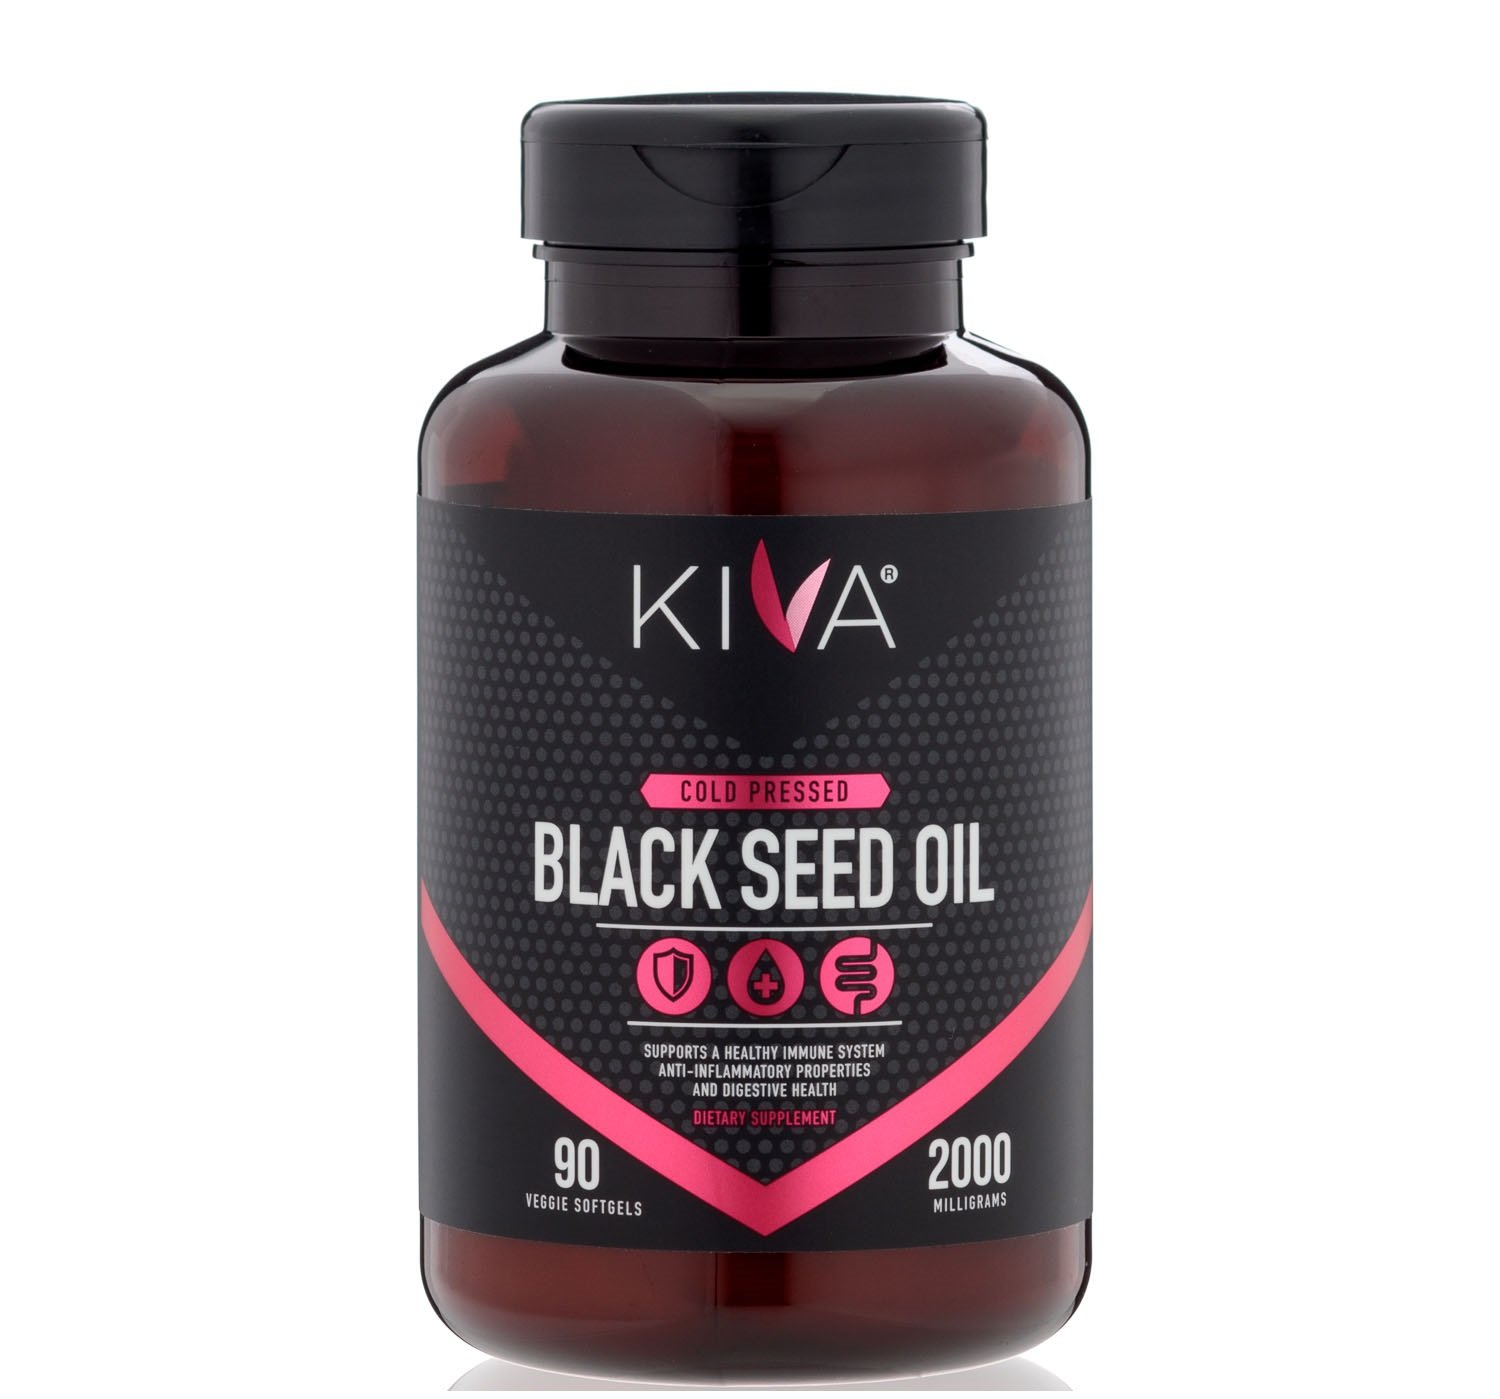 Kiva Black Seed Oil Capsules - Organic, Cold-pressed and RAW (90 Softgels)